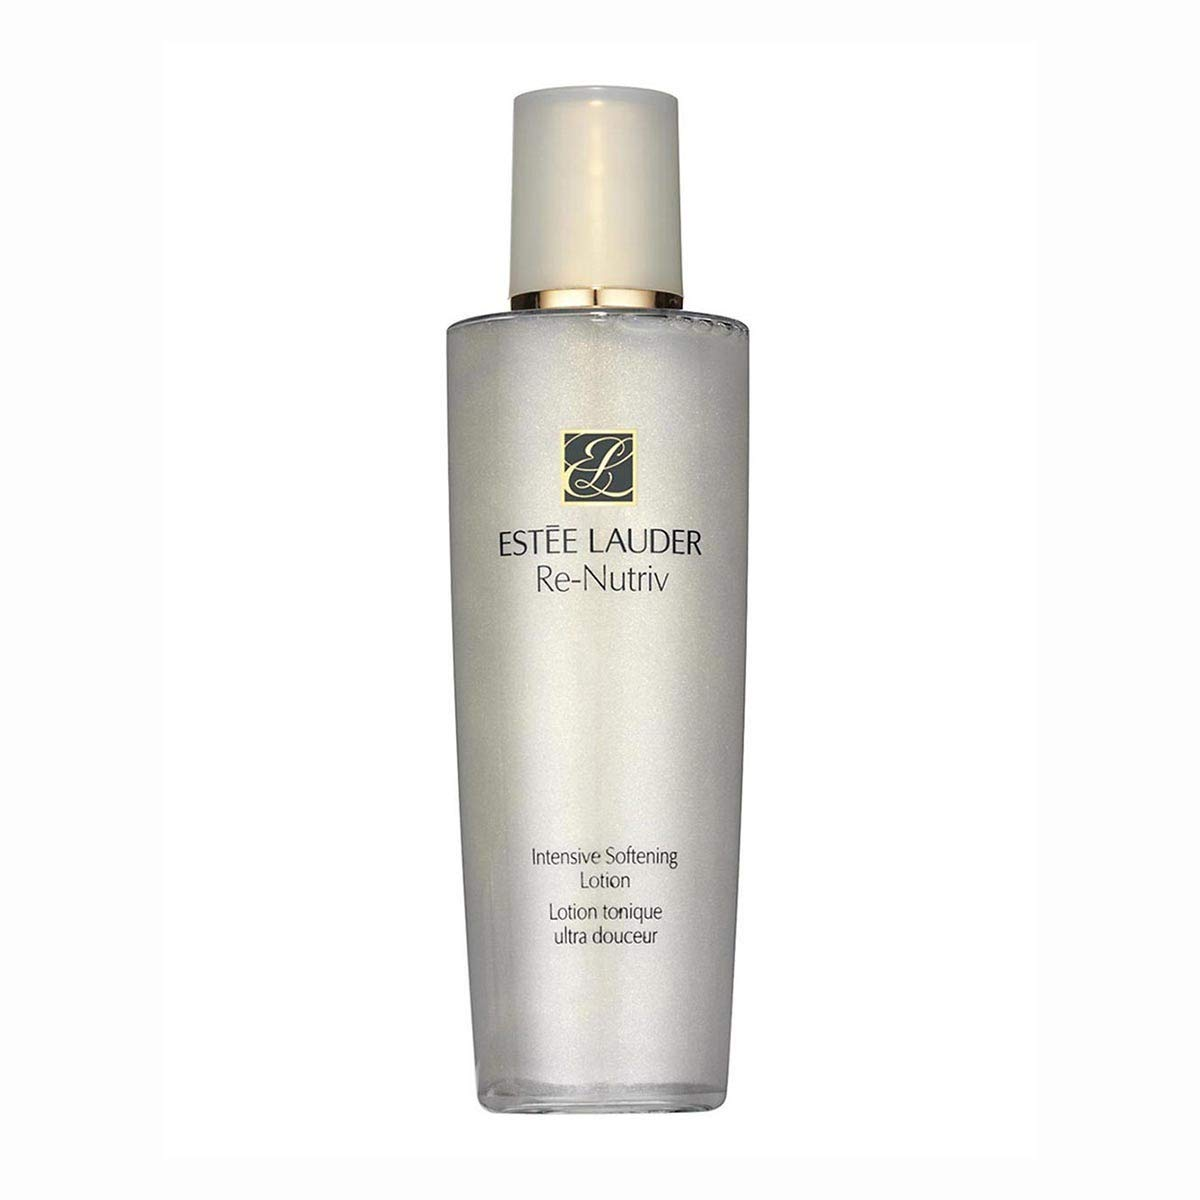 Estee Lauder Re-Nutriv INTENSIVE SOFTENING LOTION 8.4fl.oz./ 250ml